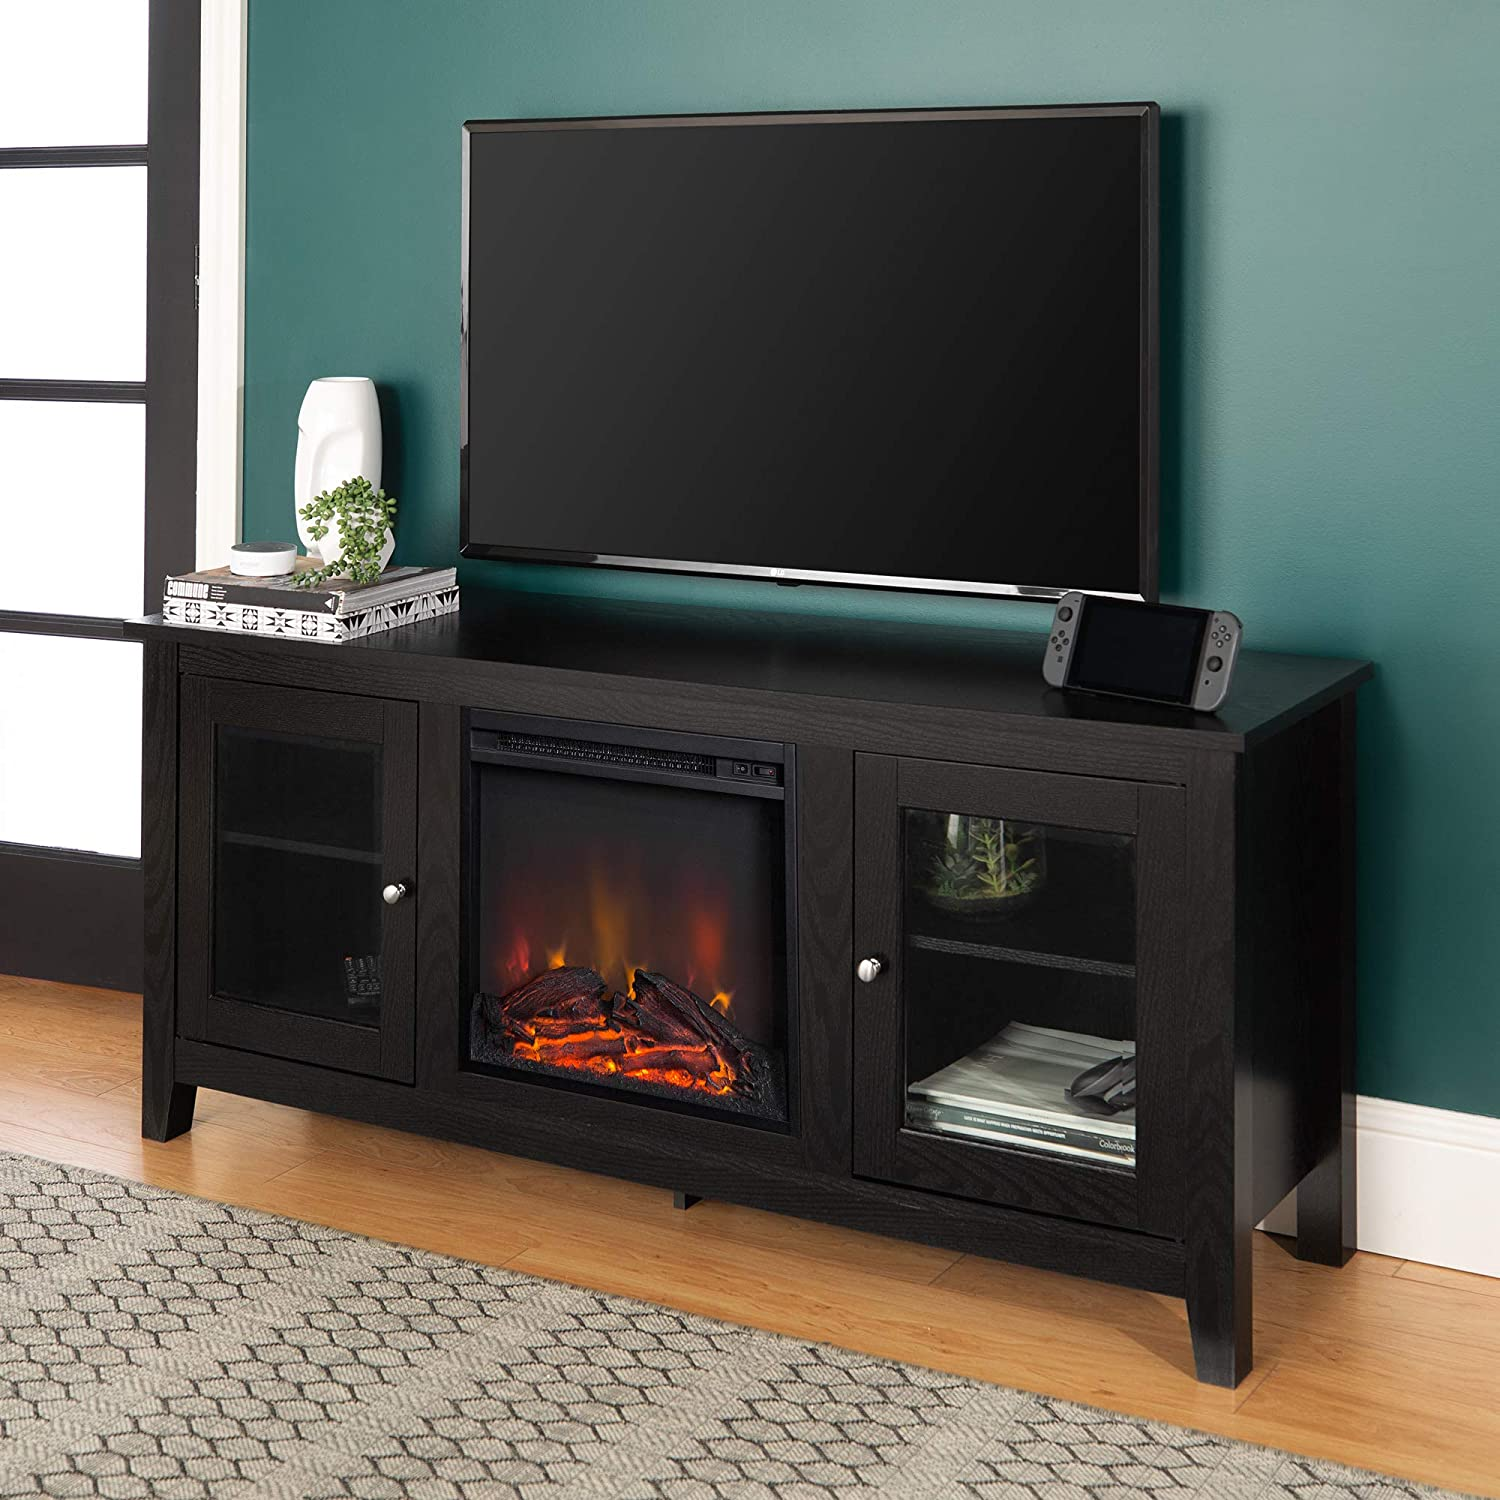 """Walker Edison WE Furniture Traditional Wood Fireplace Stand for TV's up to 64"""" Living Room Storage, 58"""", Black, 24 Inches Tall, Model:AZ58FP4DWBL"""